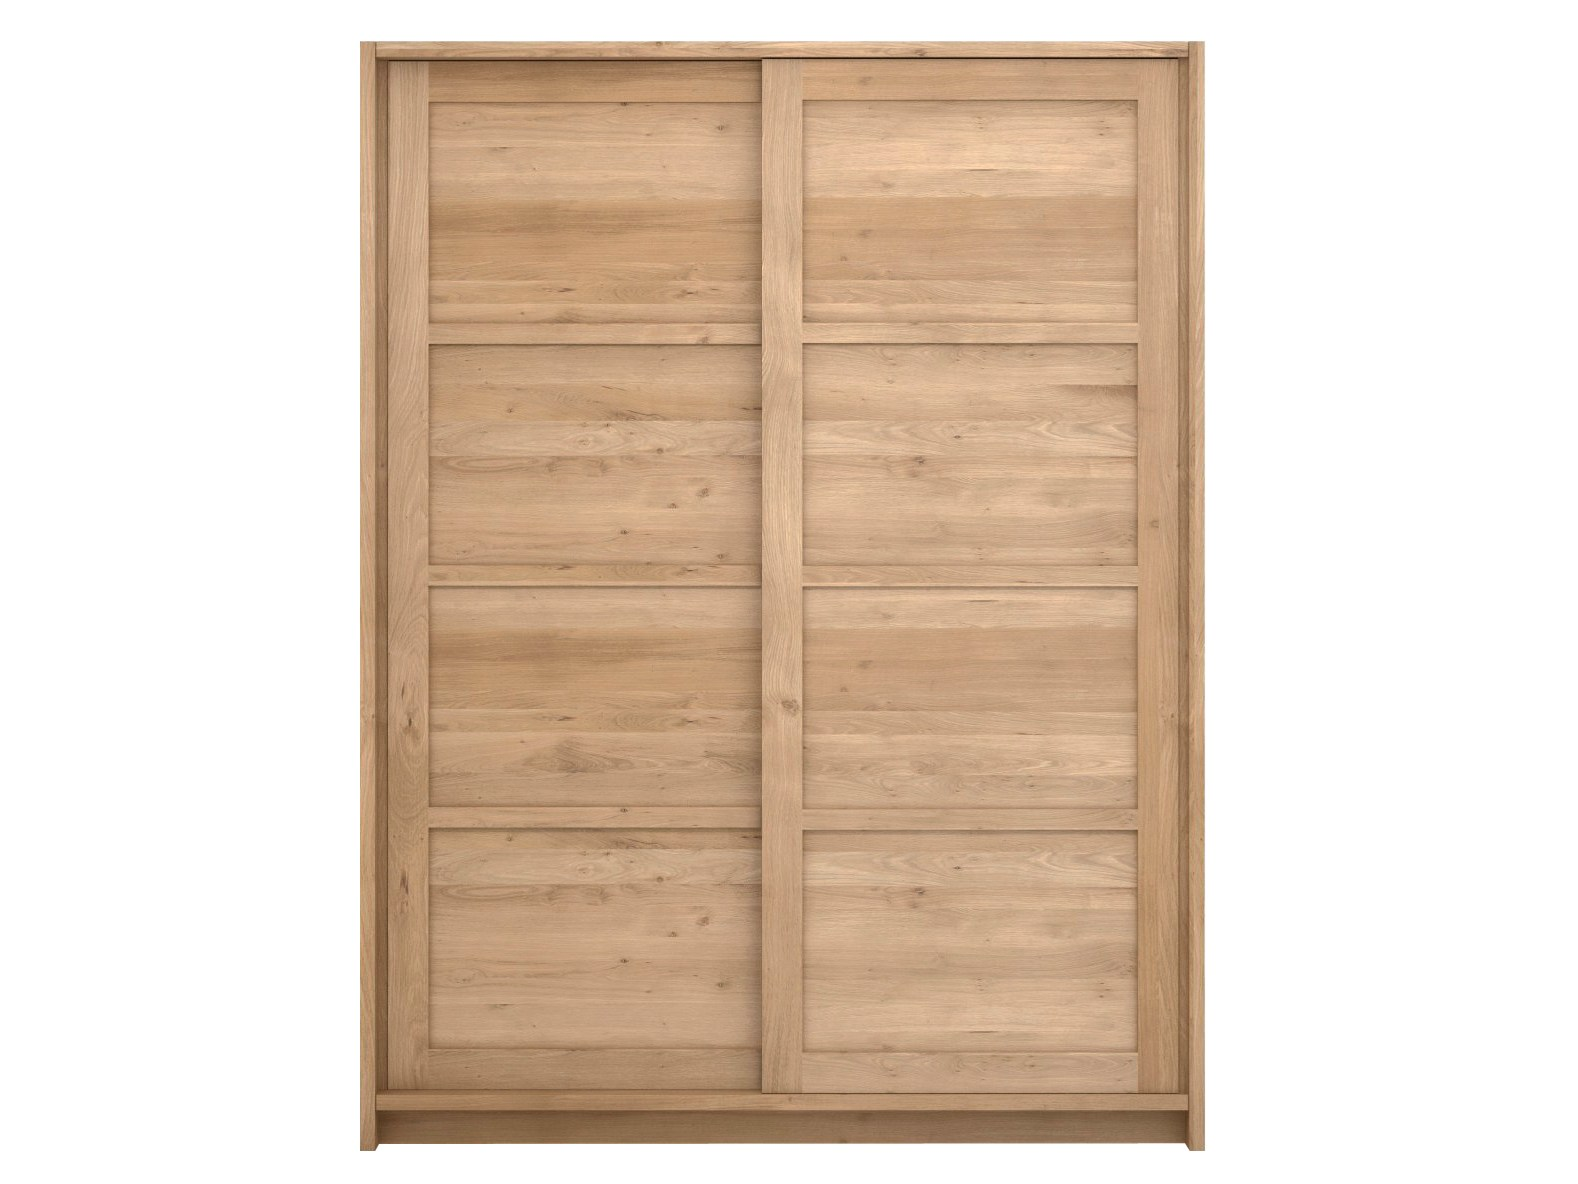 oak knockdown armoire portes coulissantes by ethnicraft. Black Bedroom Furniture Sets. Home Design Ideas